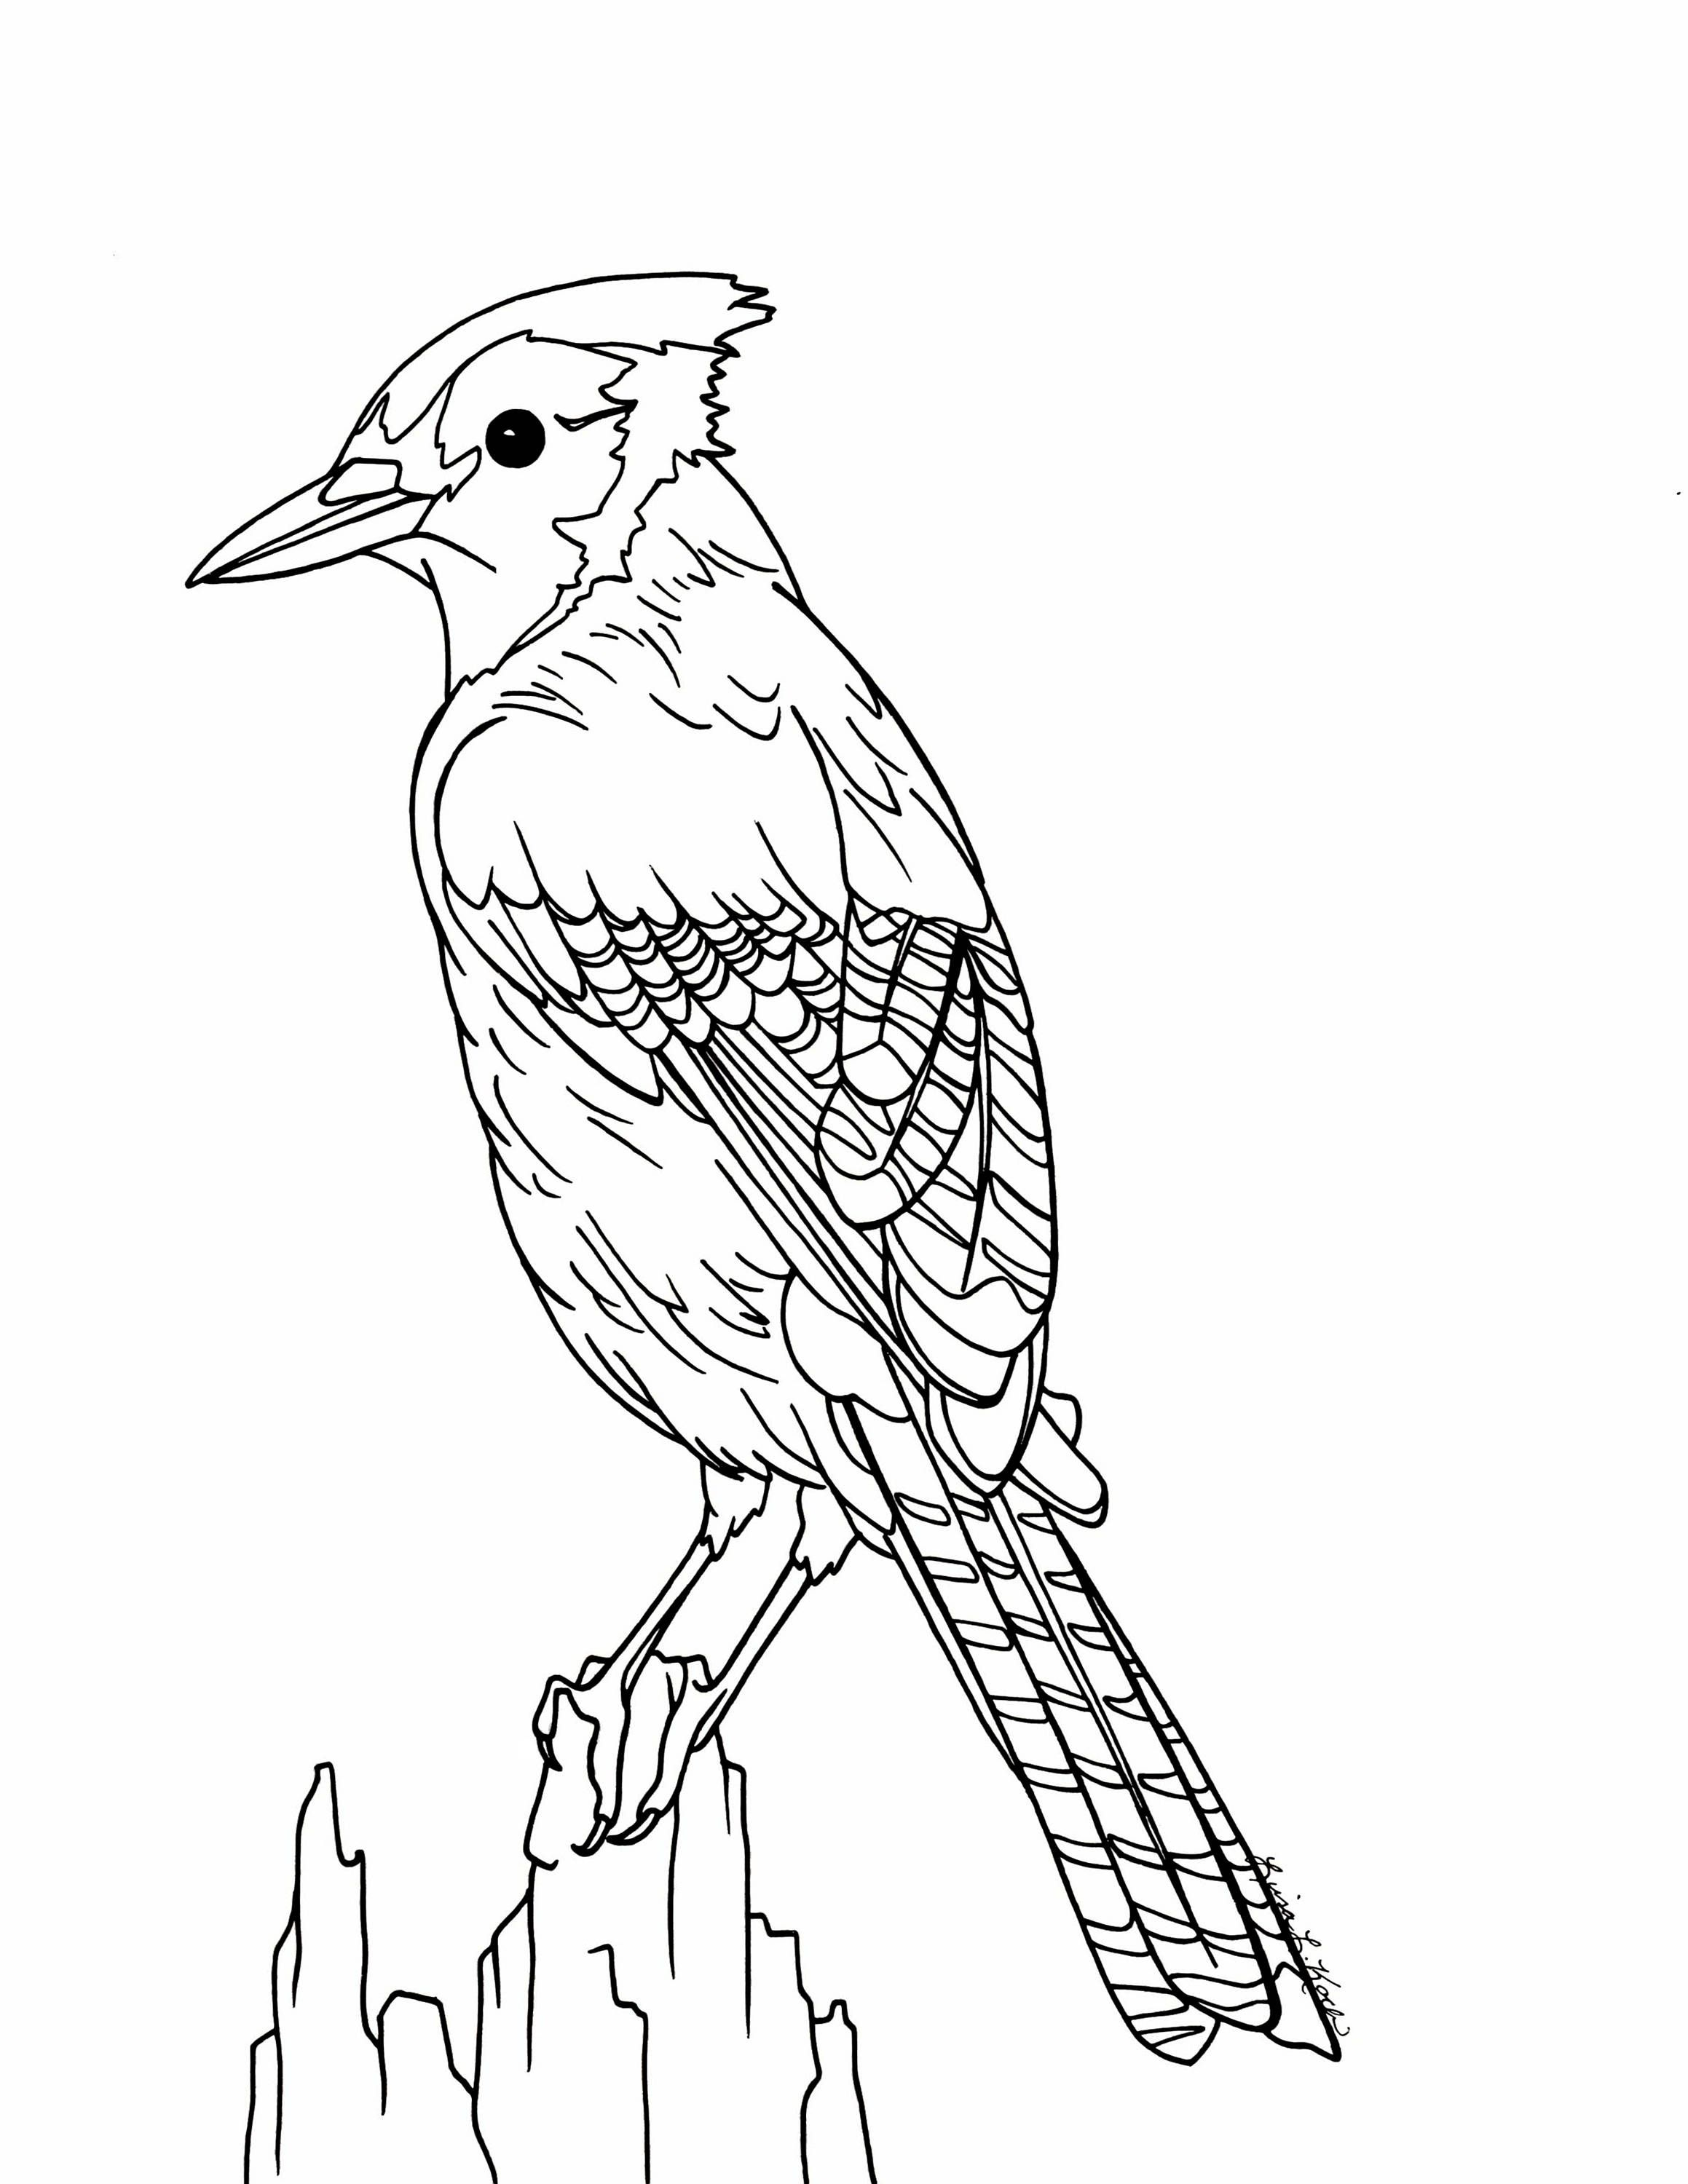 Image Result For Blue Jay Coloring Page Emoji Coloring Pages Monkey Coloring Pages Coloring Pages